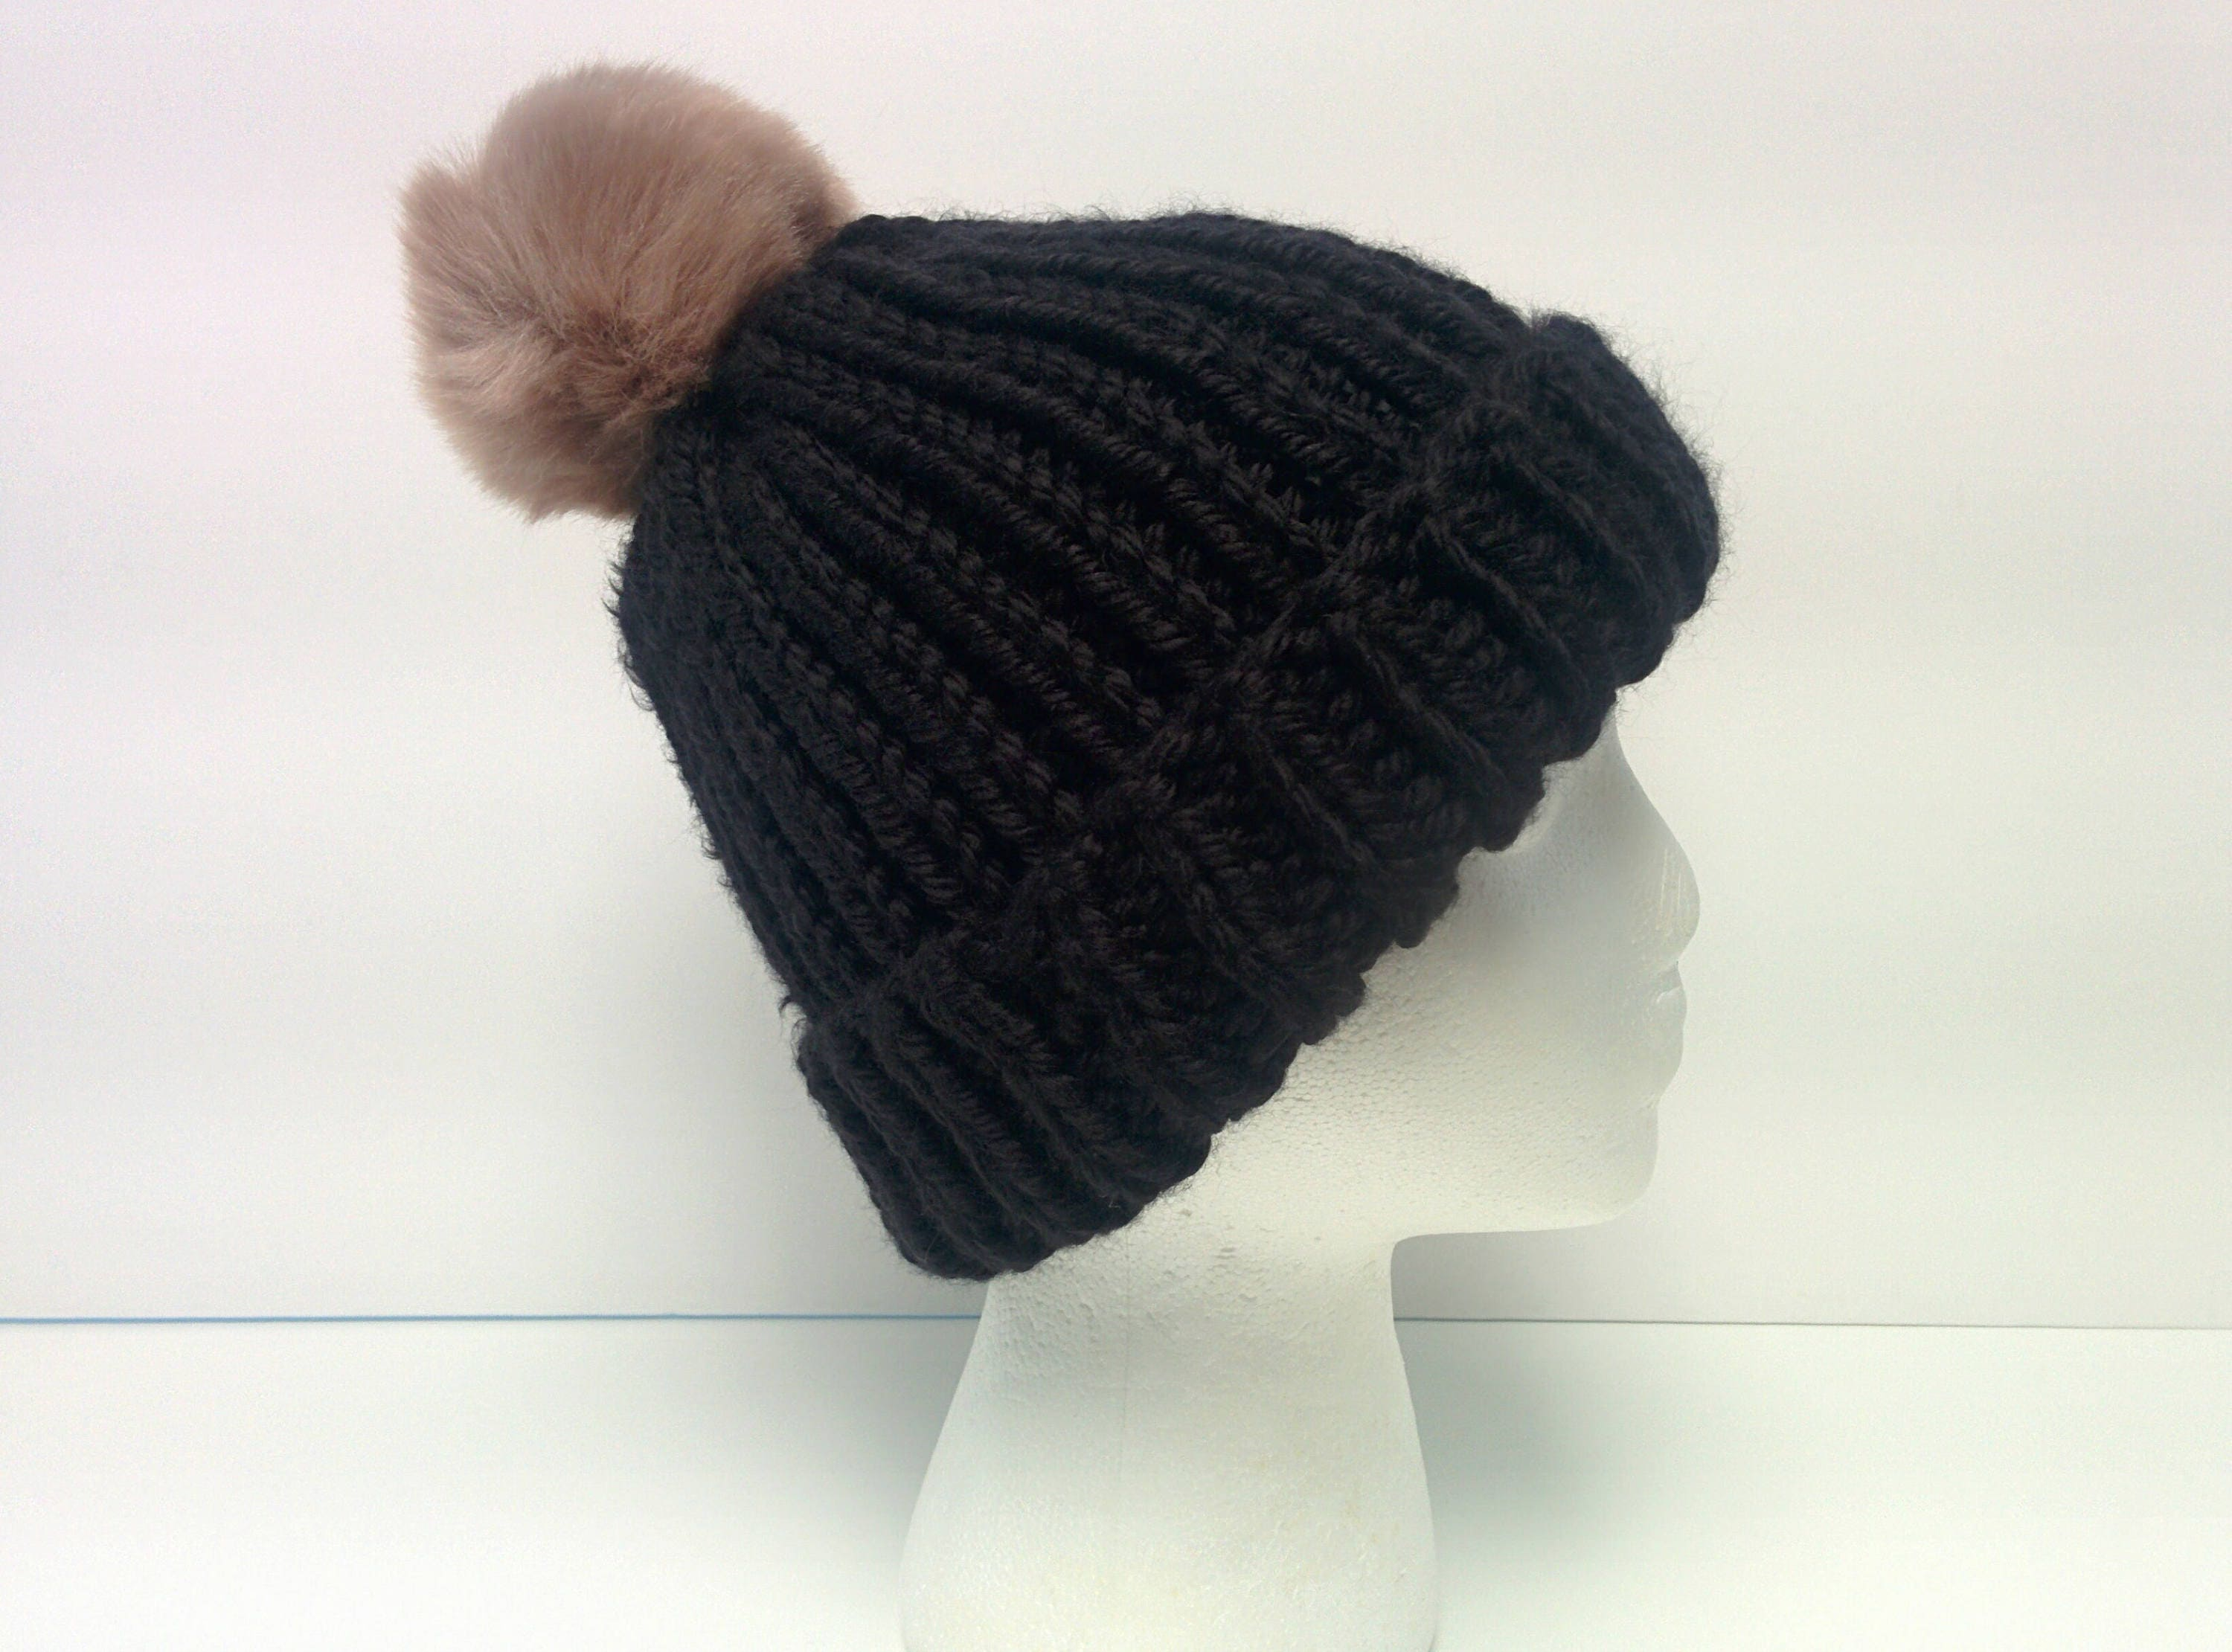 KNITTING PATTERN: Ribbed Beanie | knitting patterns for hats | knit ...